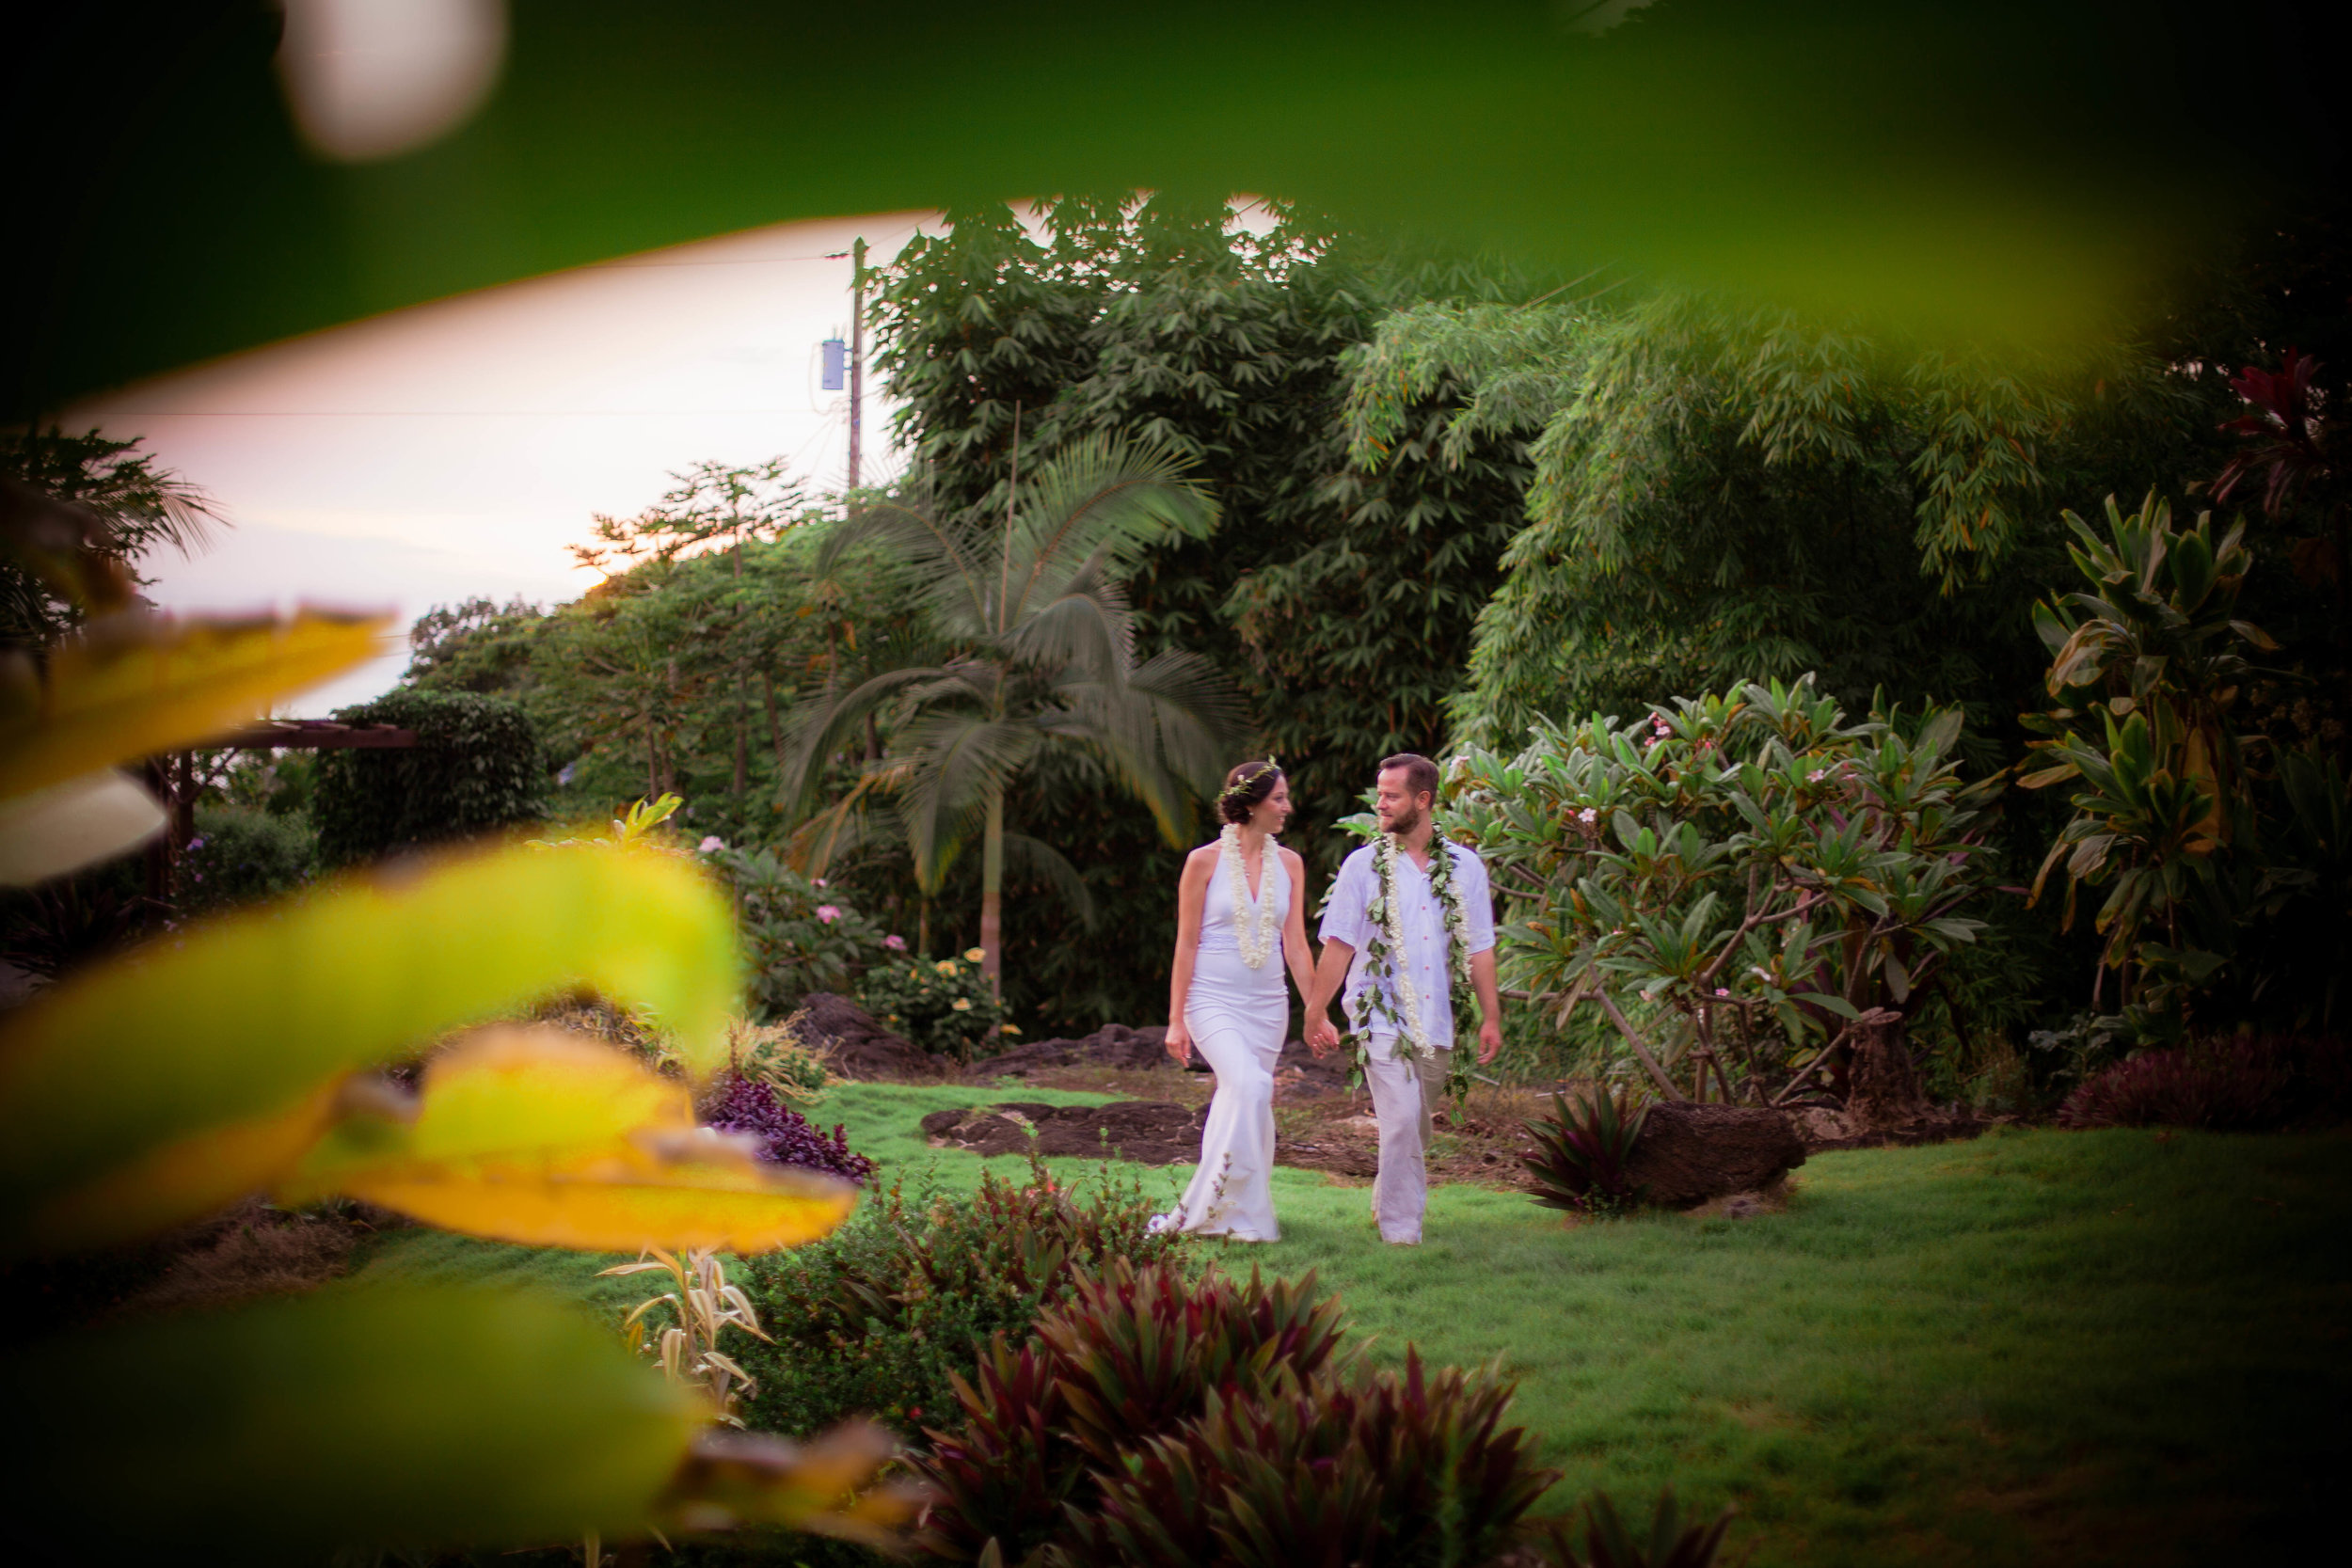 big island hawaii holualoa estate wedding 20160908183445-1kb.jpg